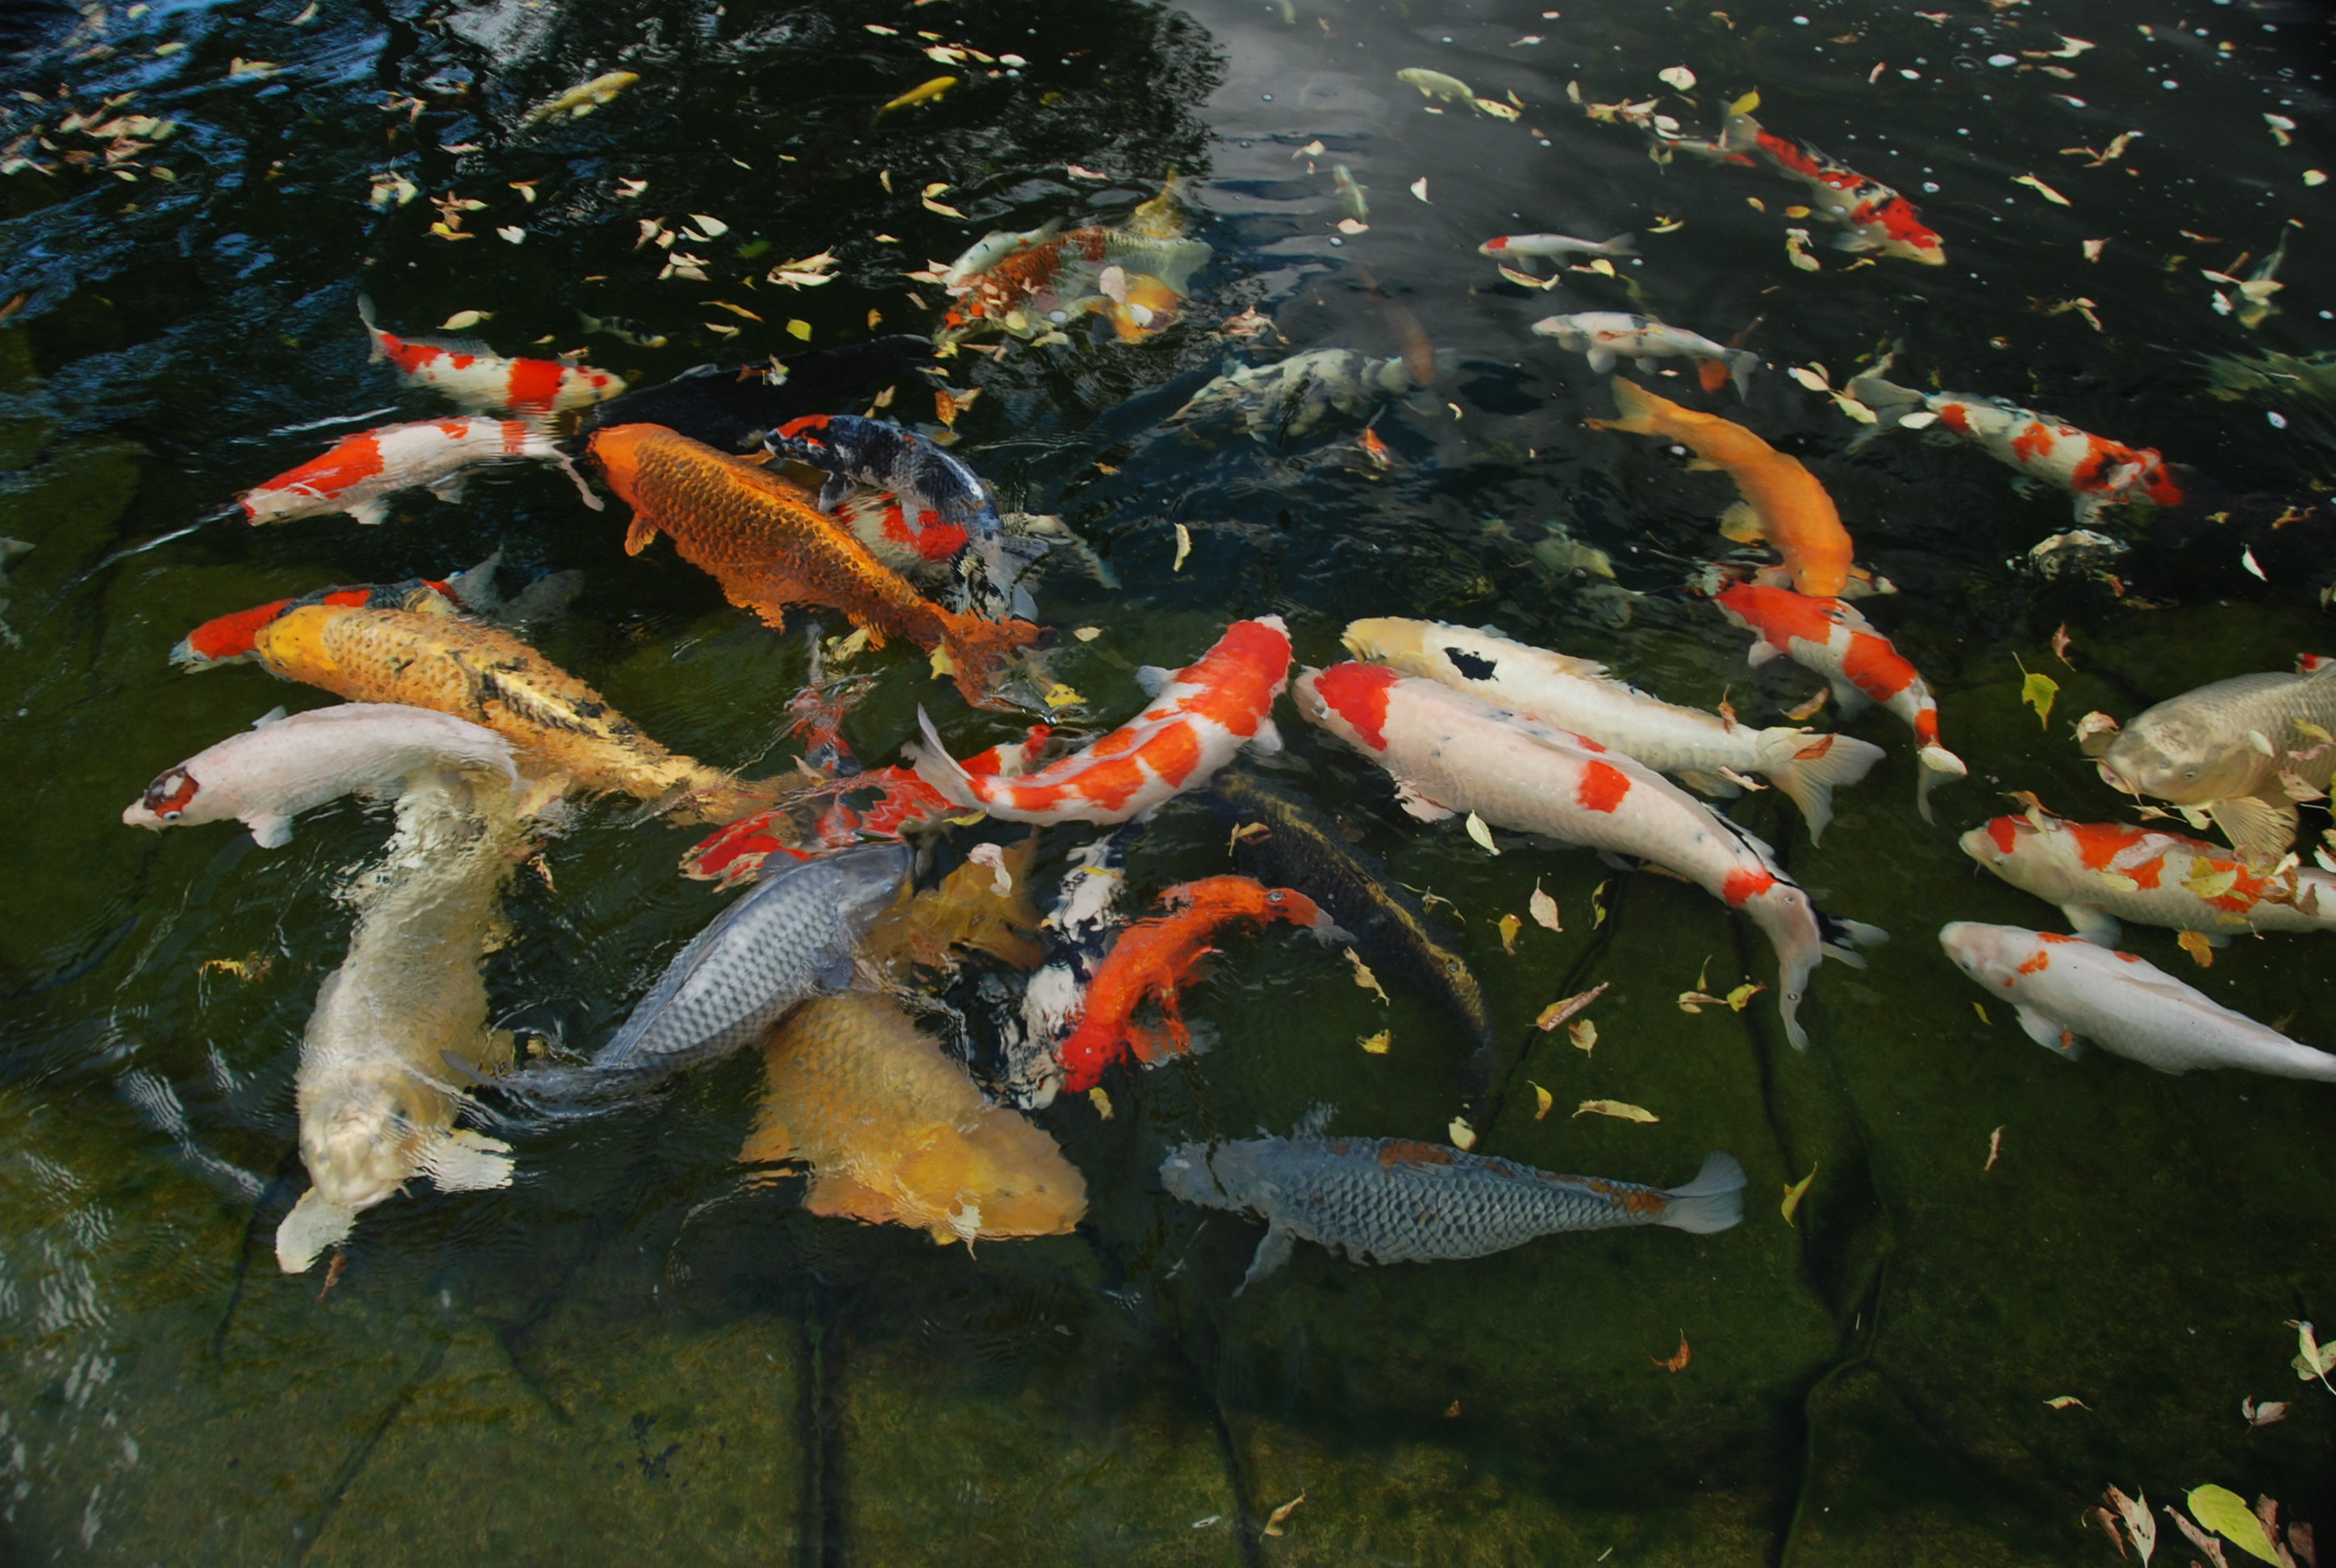 Koi acres imported japanese koi online shopping for koi for Koi goldfisch